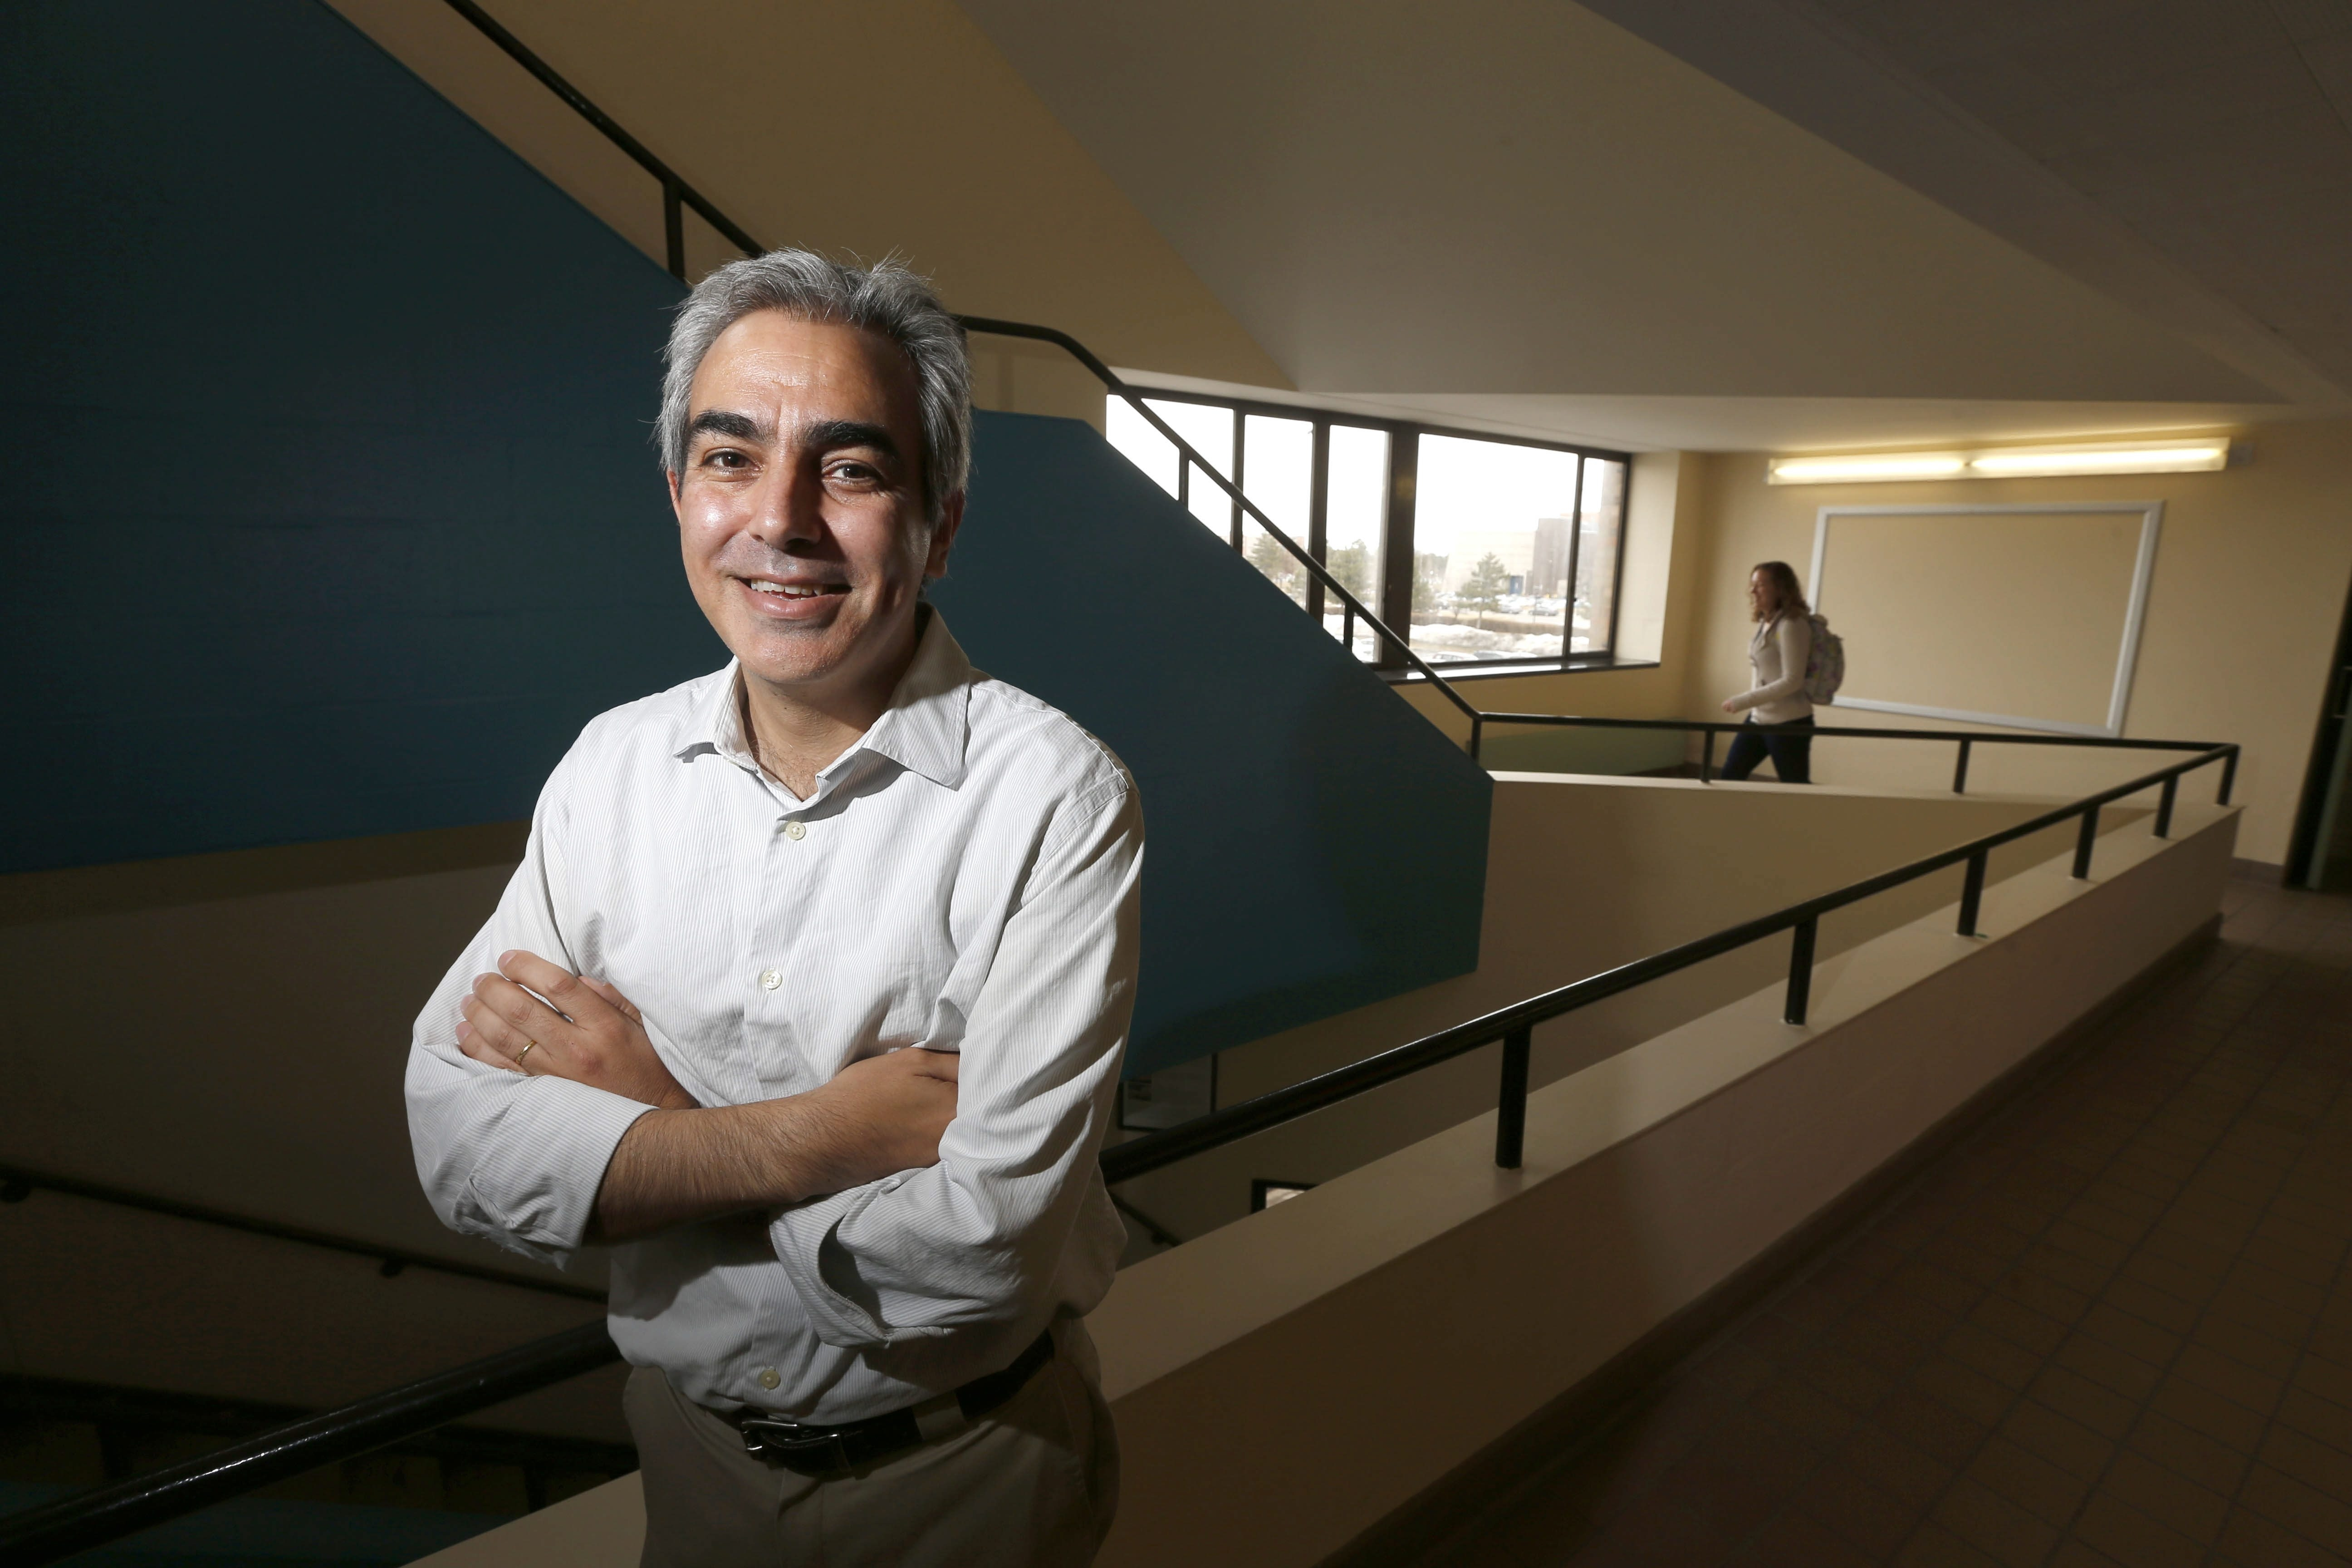 Julio Jorge Elias, a former UB economist, says the current organ donation system is not meeting the nation's needs.